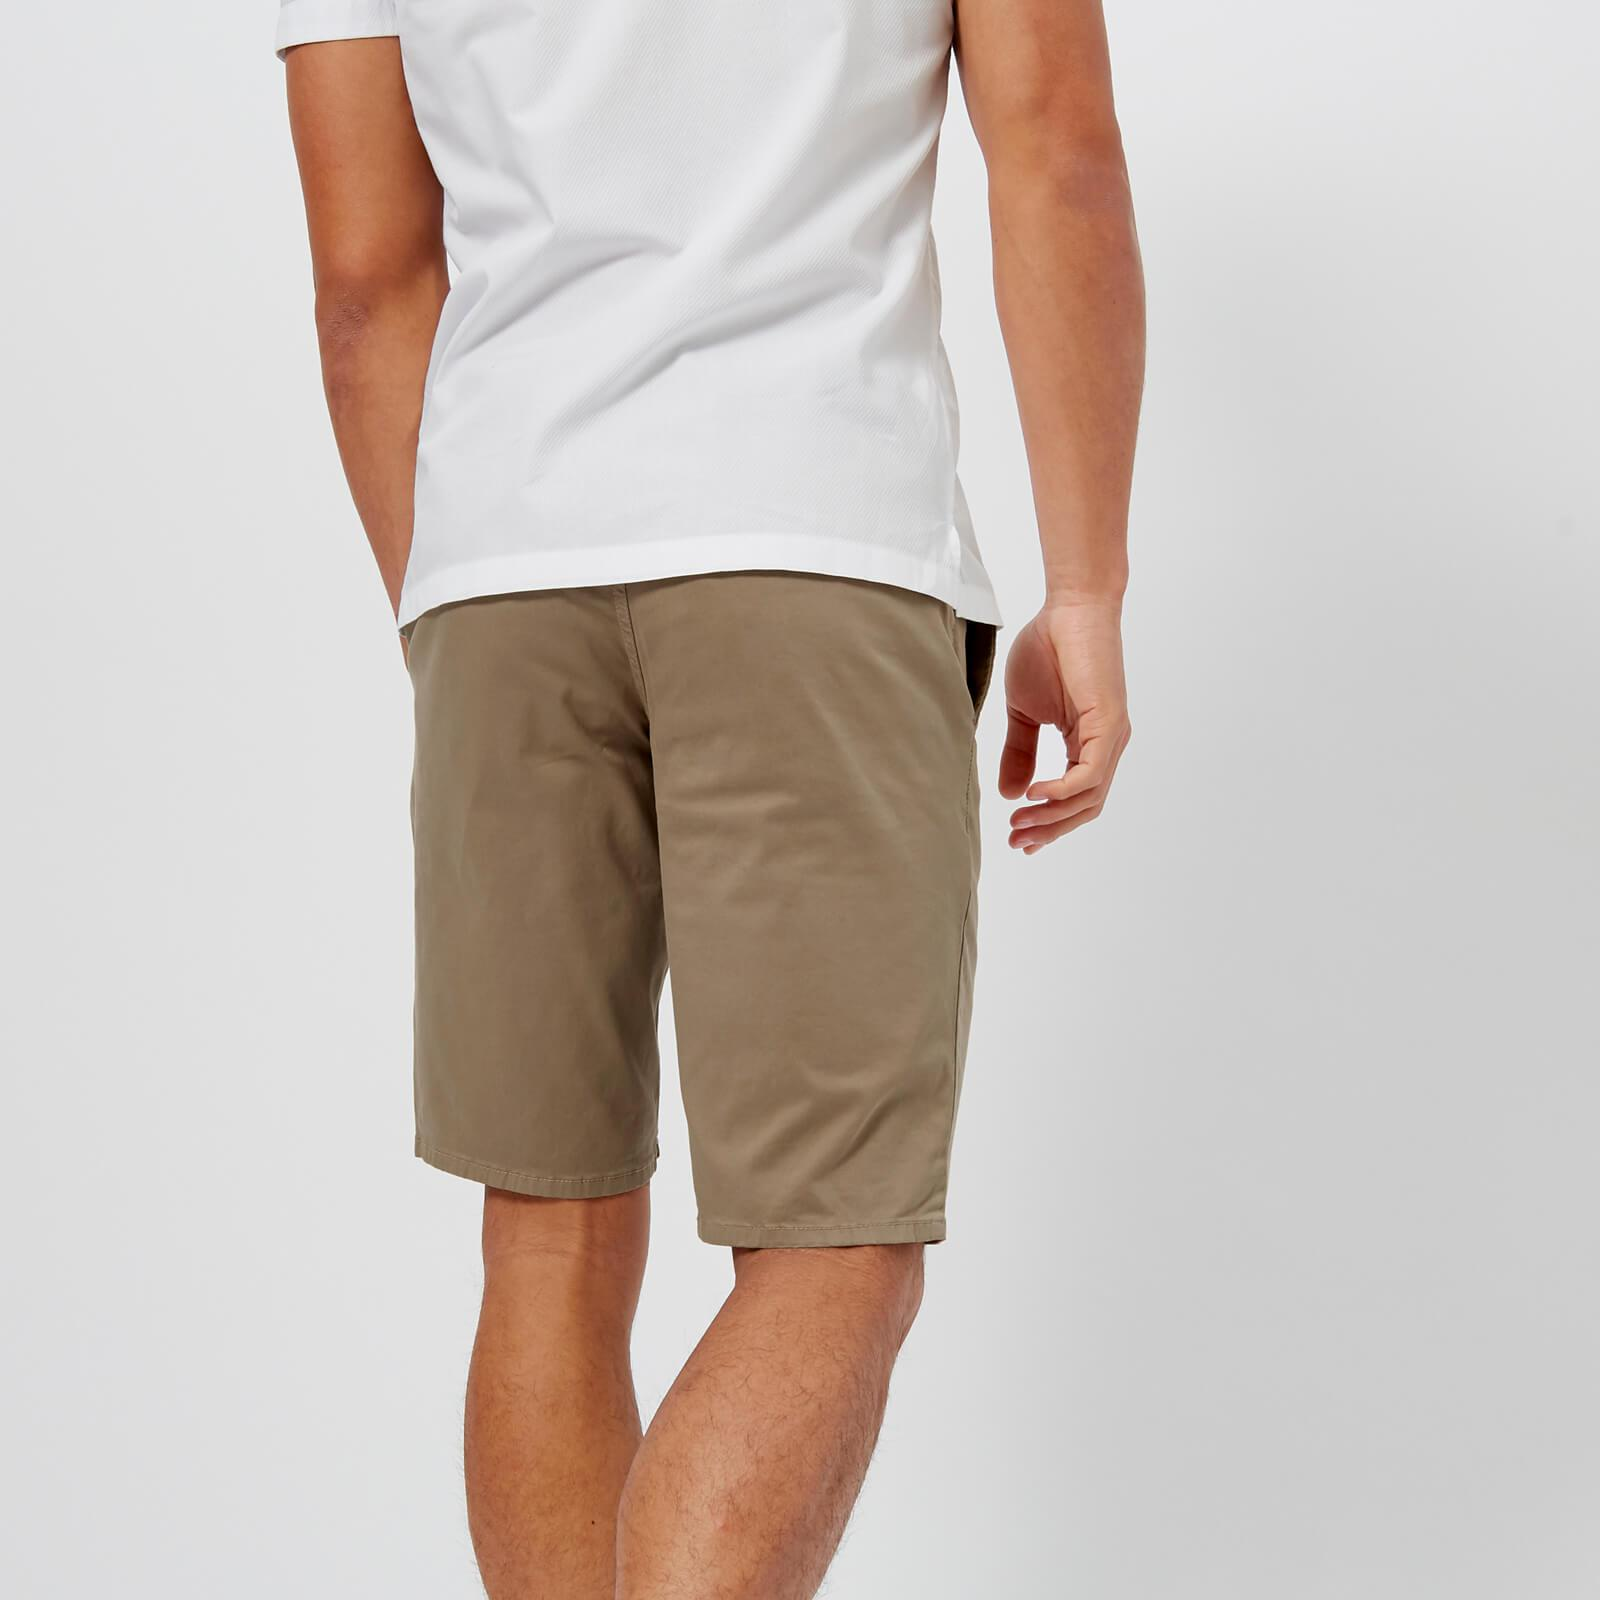 7eb025cc2 Boss Orange Schino Slim Shorts in Natural for Men - Lyst